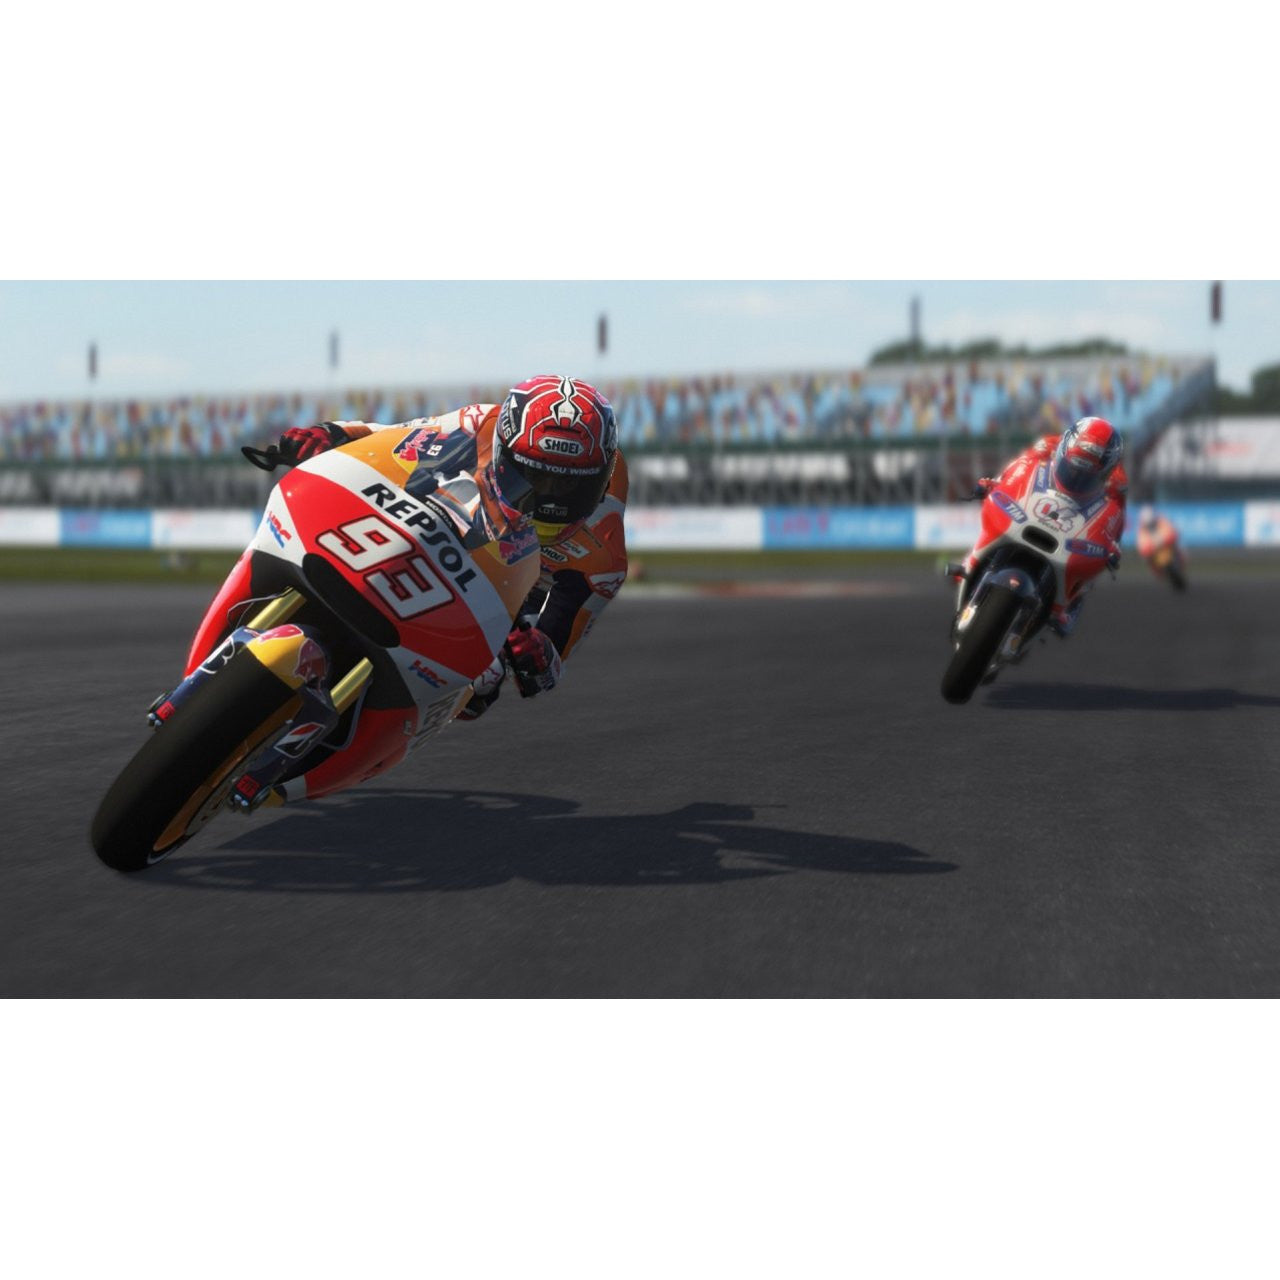 Motogp15 Game Ps3 Playstation | MotoGP 2017 Info, Video, Points Table